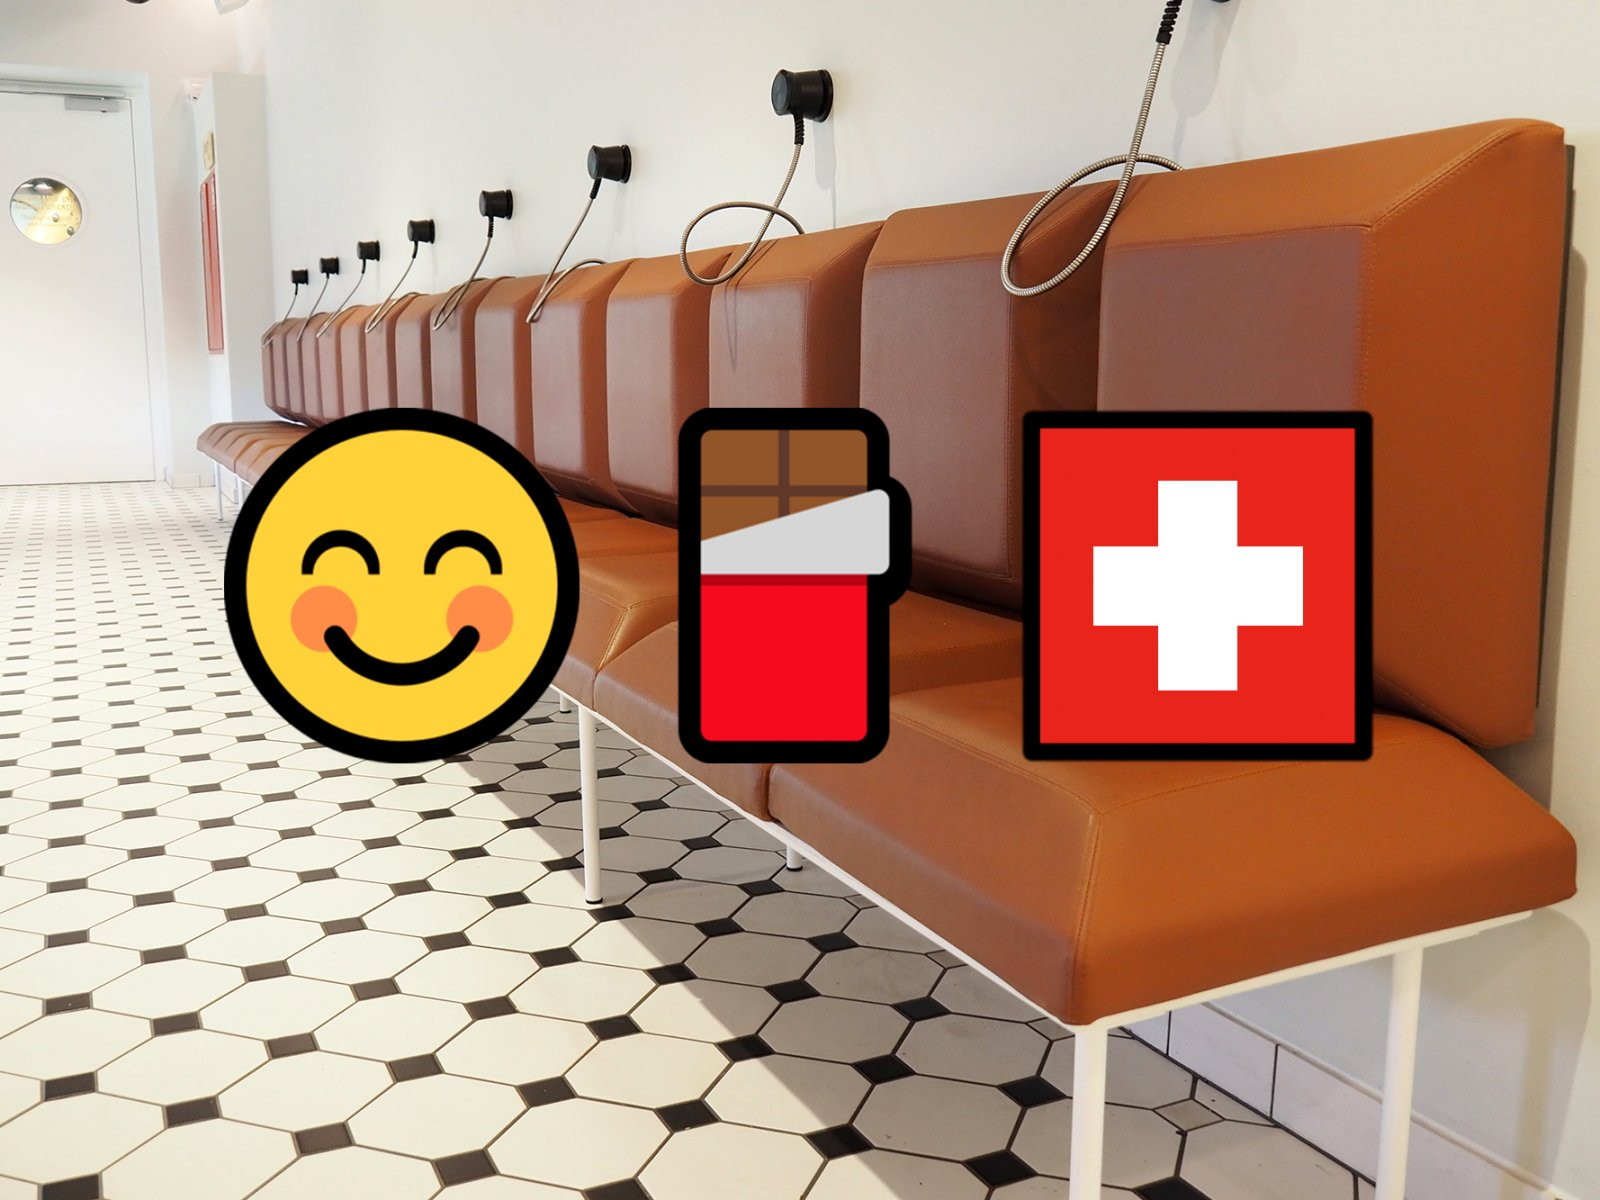 Proof That Life in Switzerland Doesn't Suck